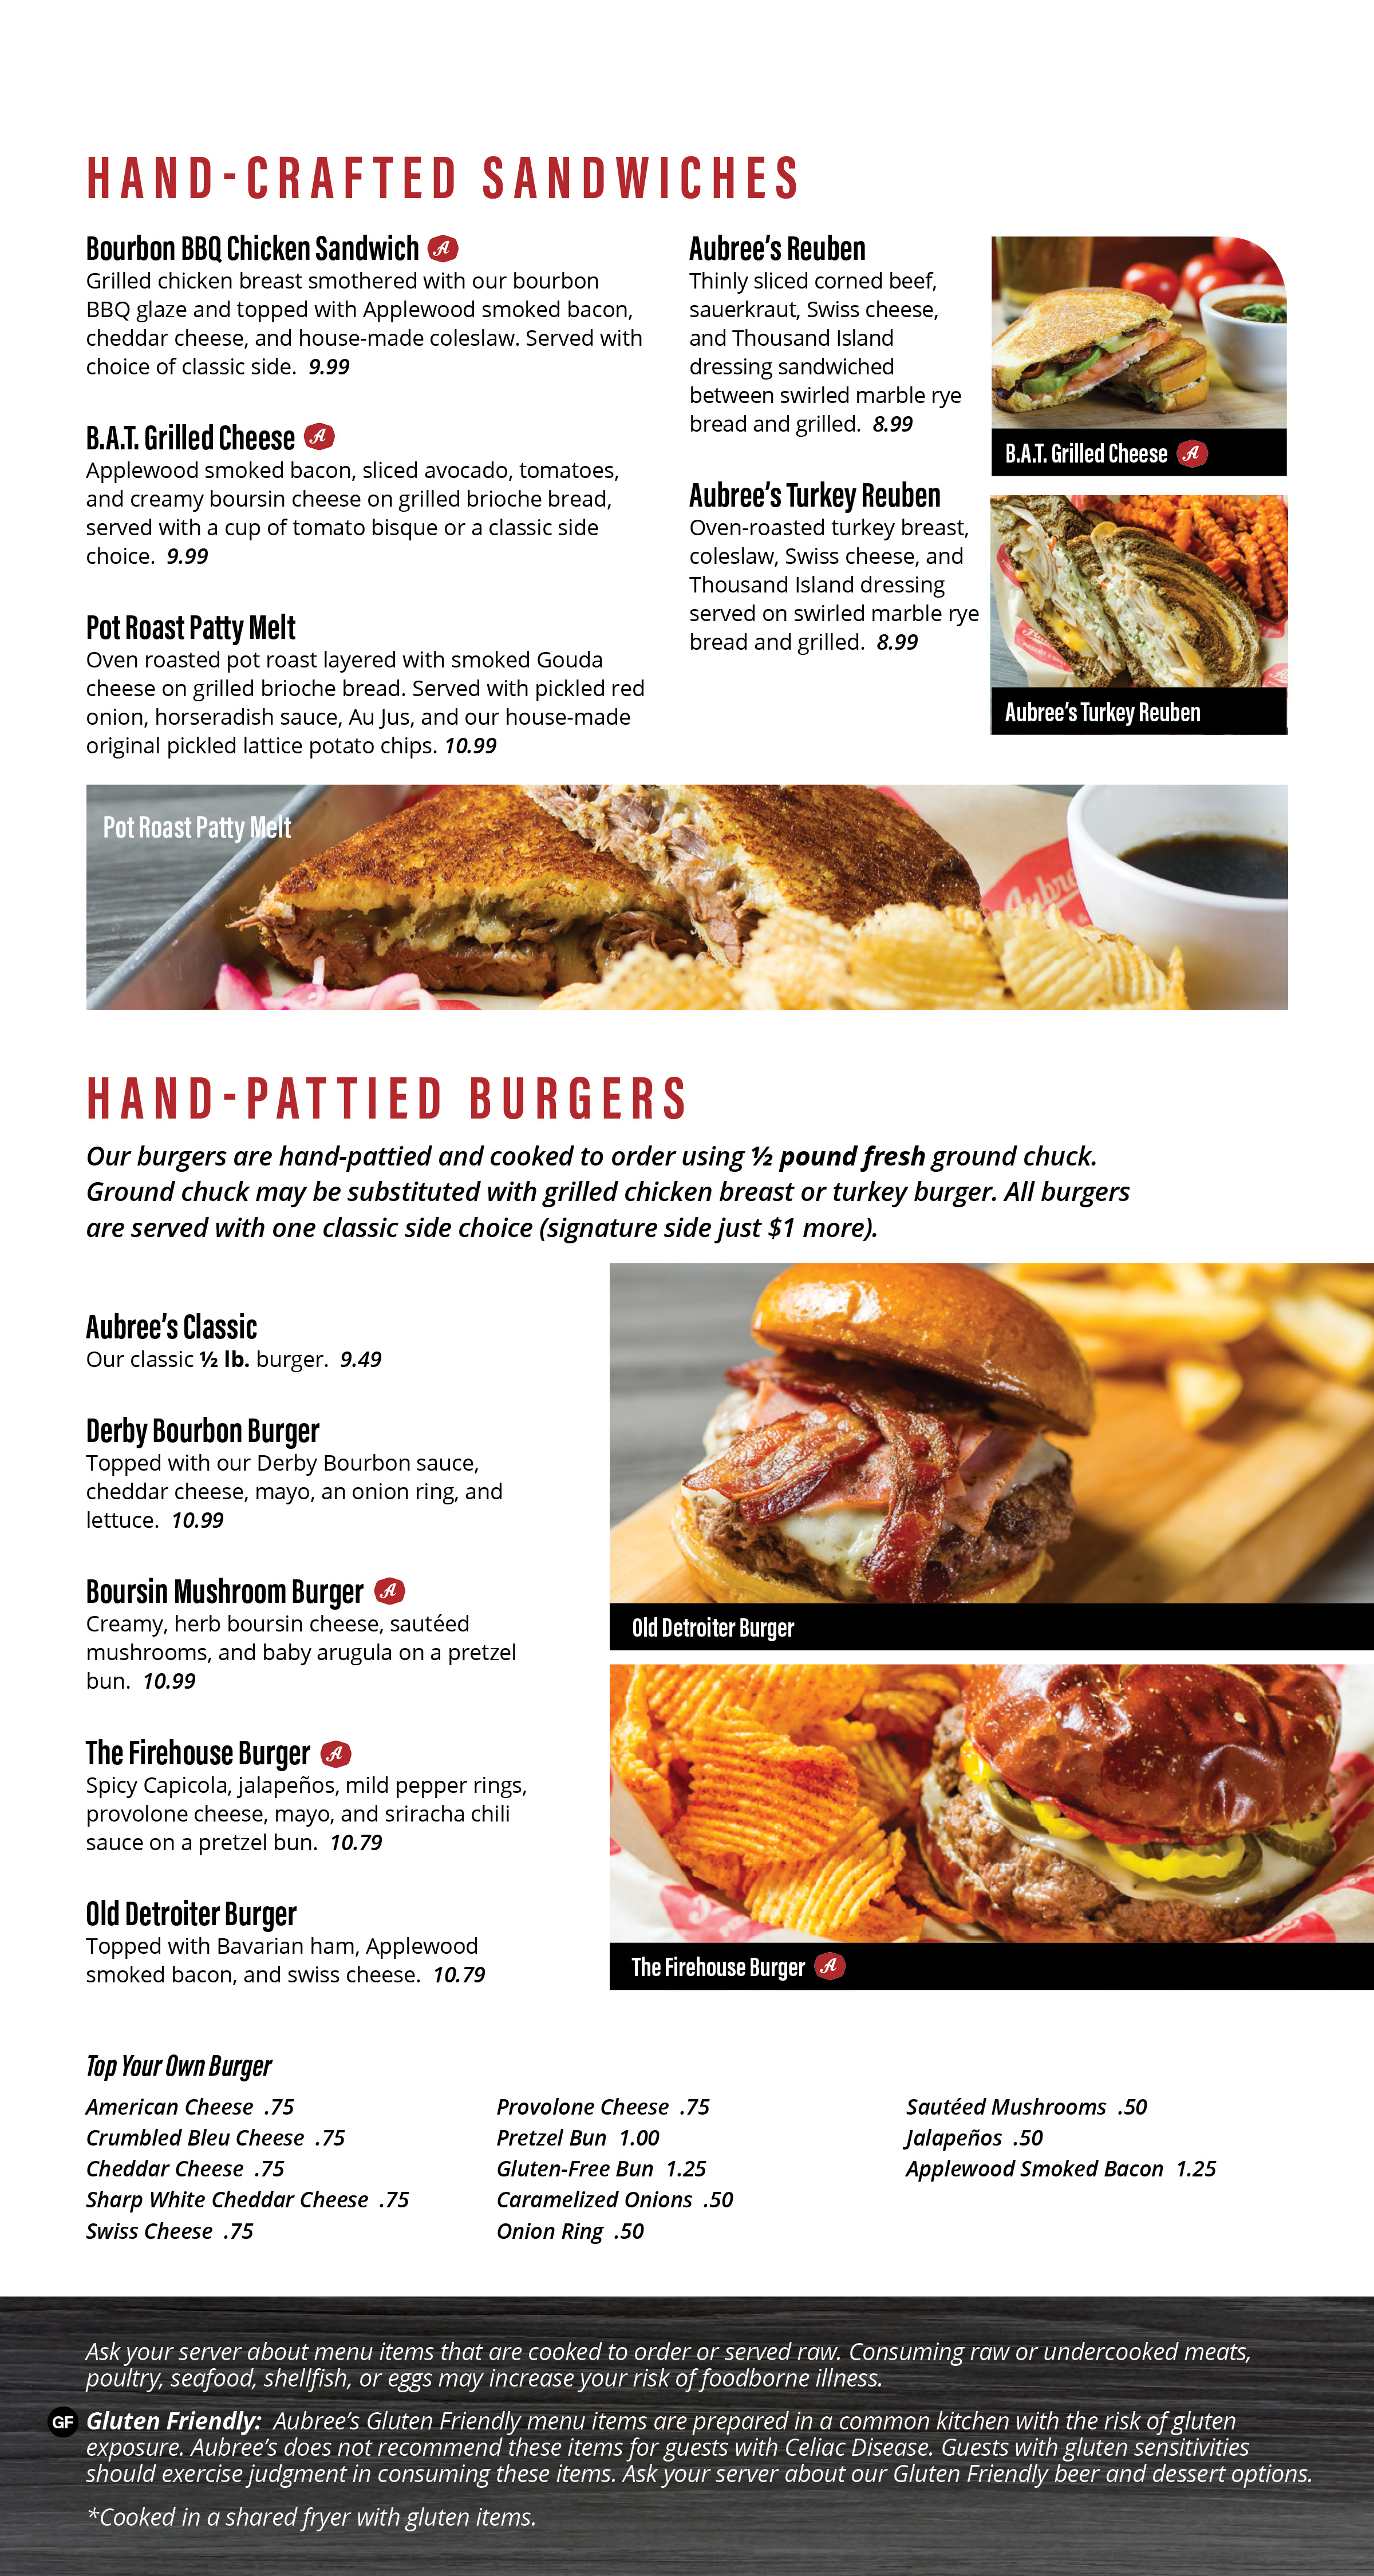 Hand-Crafted Sandwiches & Hand-Pattied Burgers